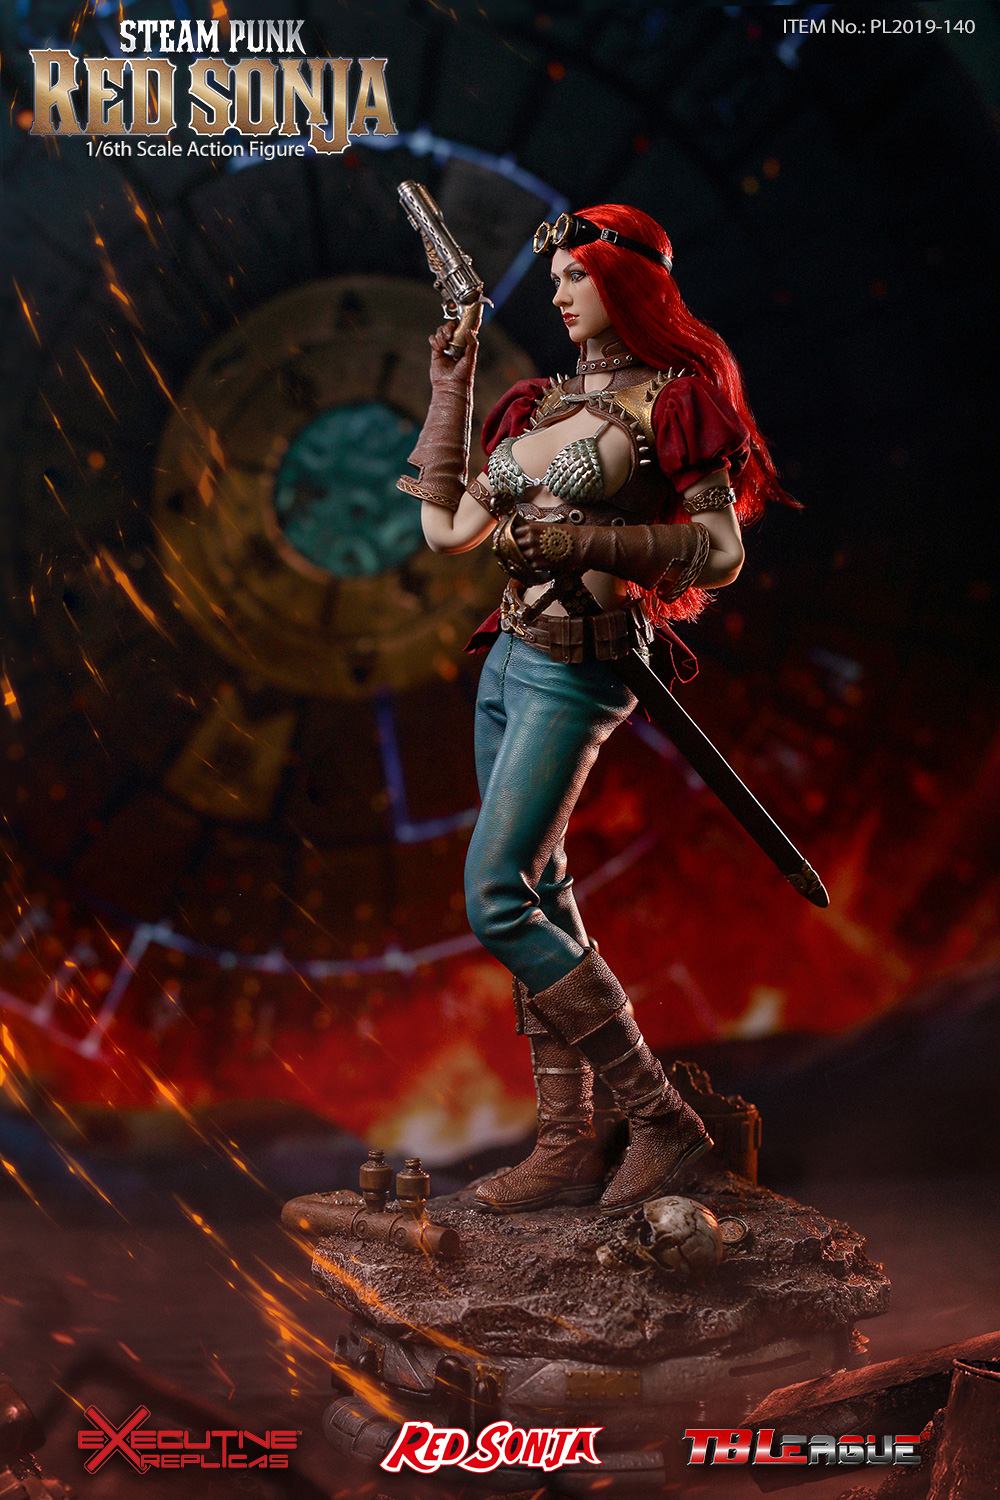 steampunk - NEW PRODUCT: TBLeague: 1/6 Steam Punk - Red Sonja / Queen Excalibur [punk version] PL2019-140-A/B 20192811